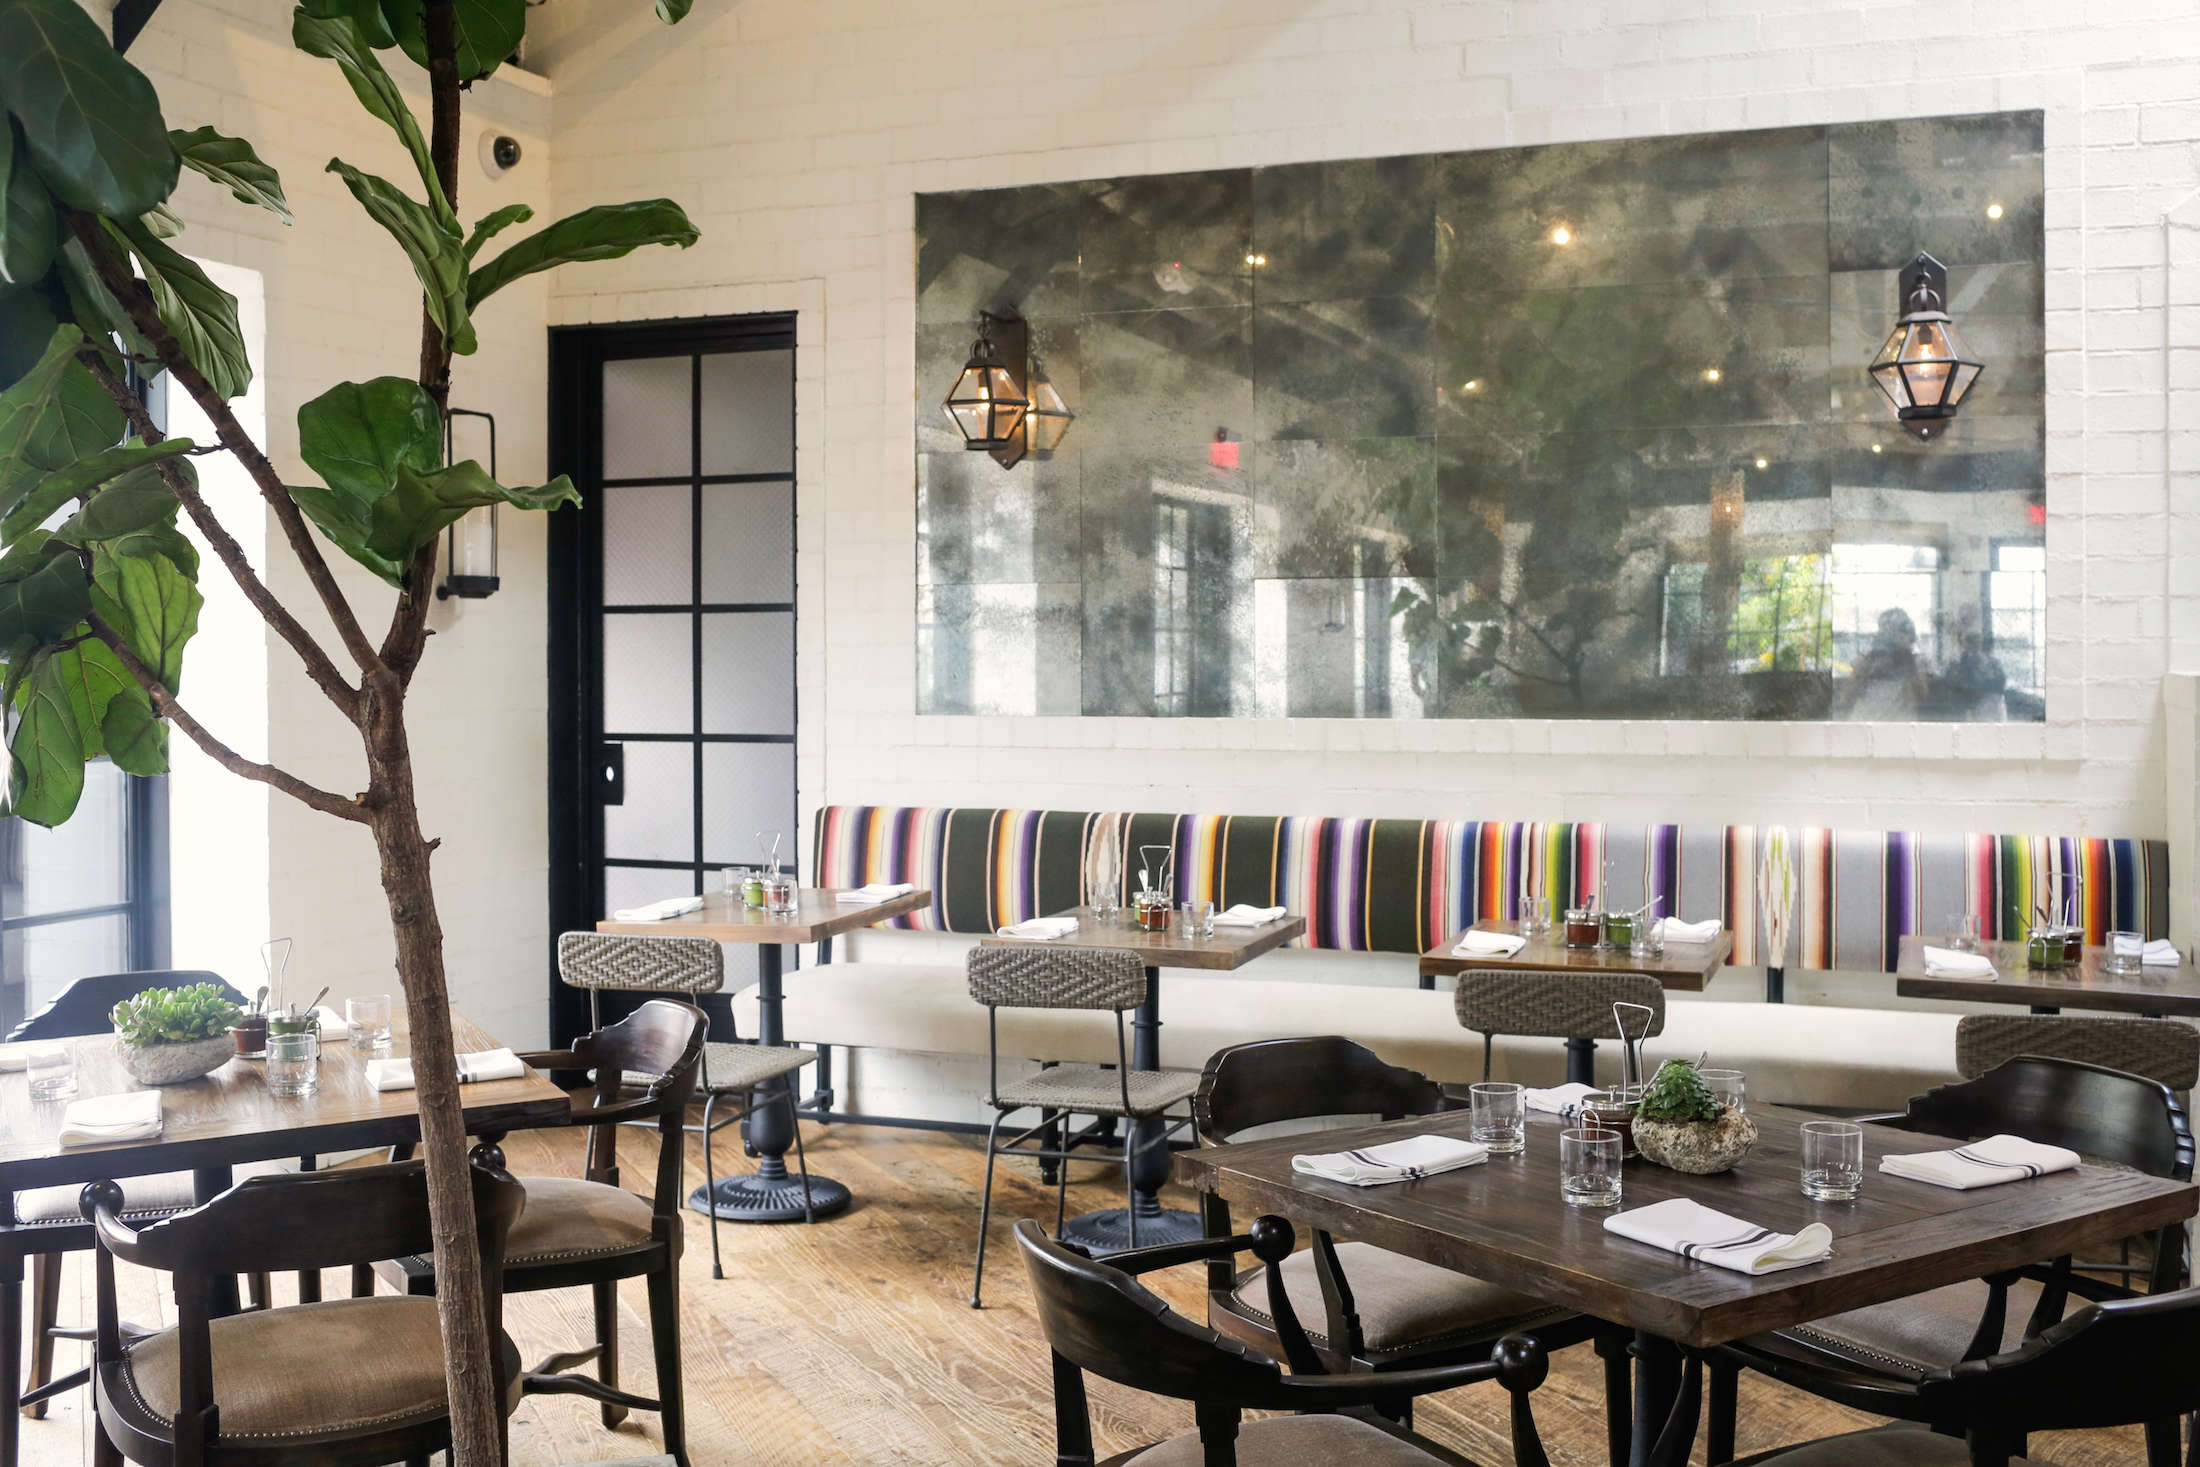 Gracias Madre restaurant visit: gracias madre in west hollywood - remodelista